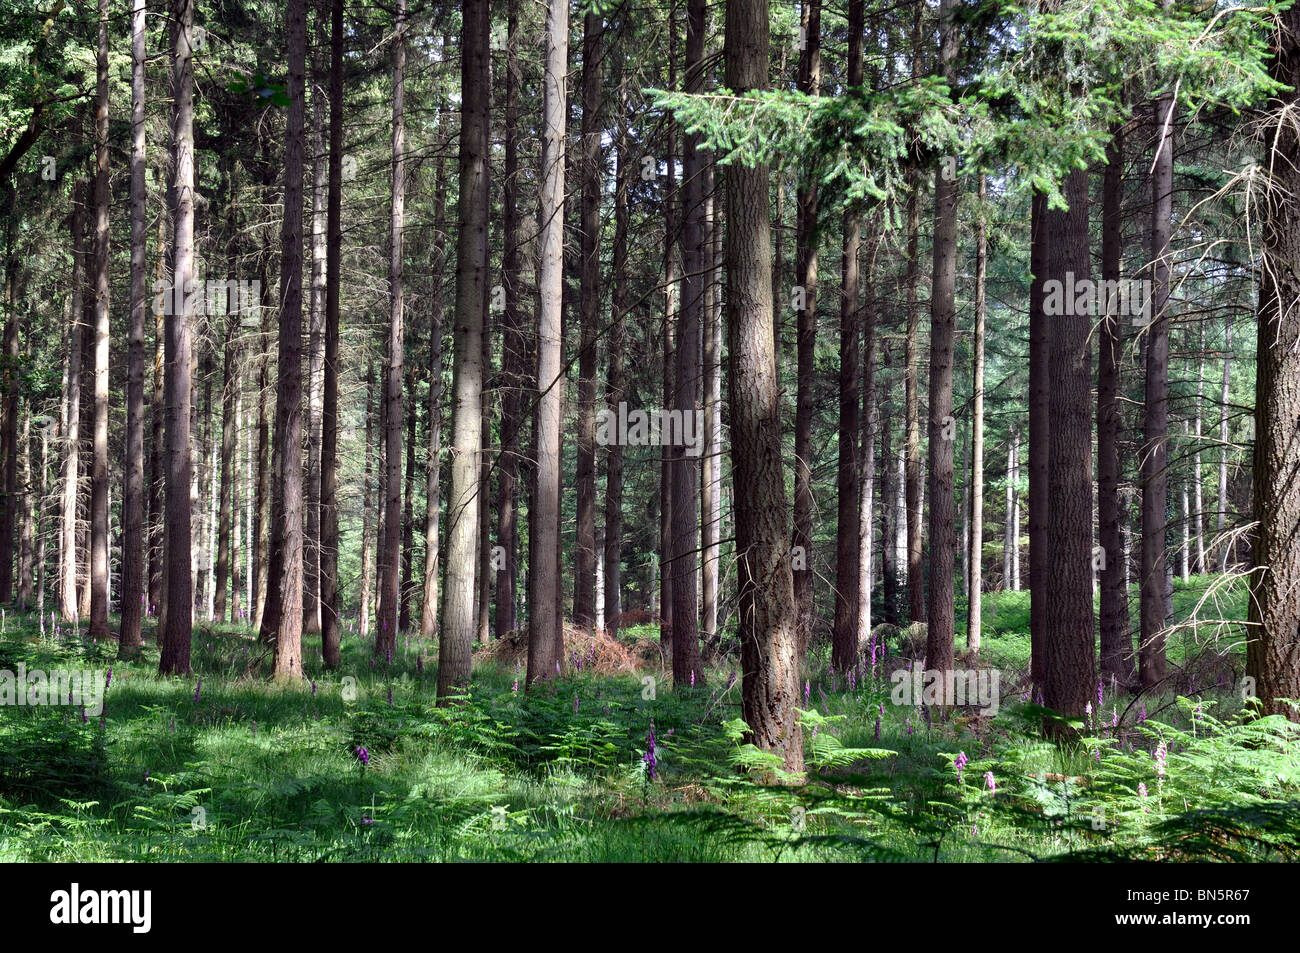 Nagshead Nature Reserve, Forest of Dean, Gloucestershire, England, UK - Stock Image